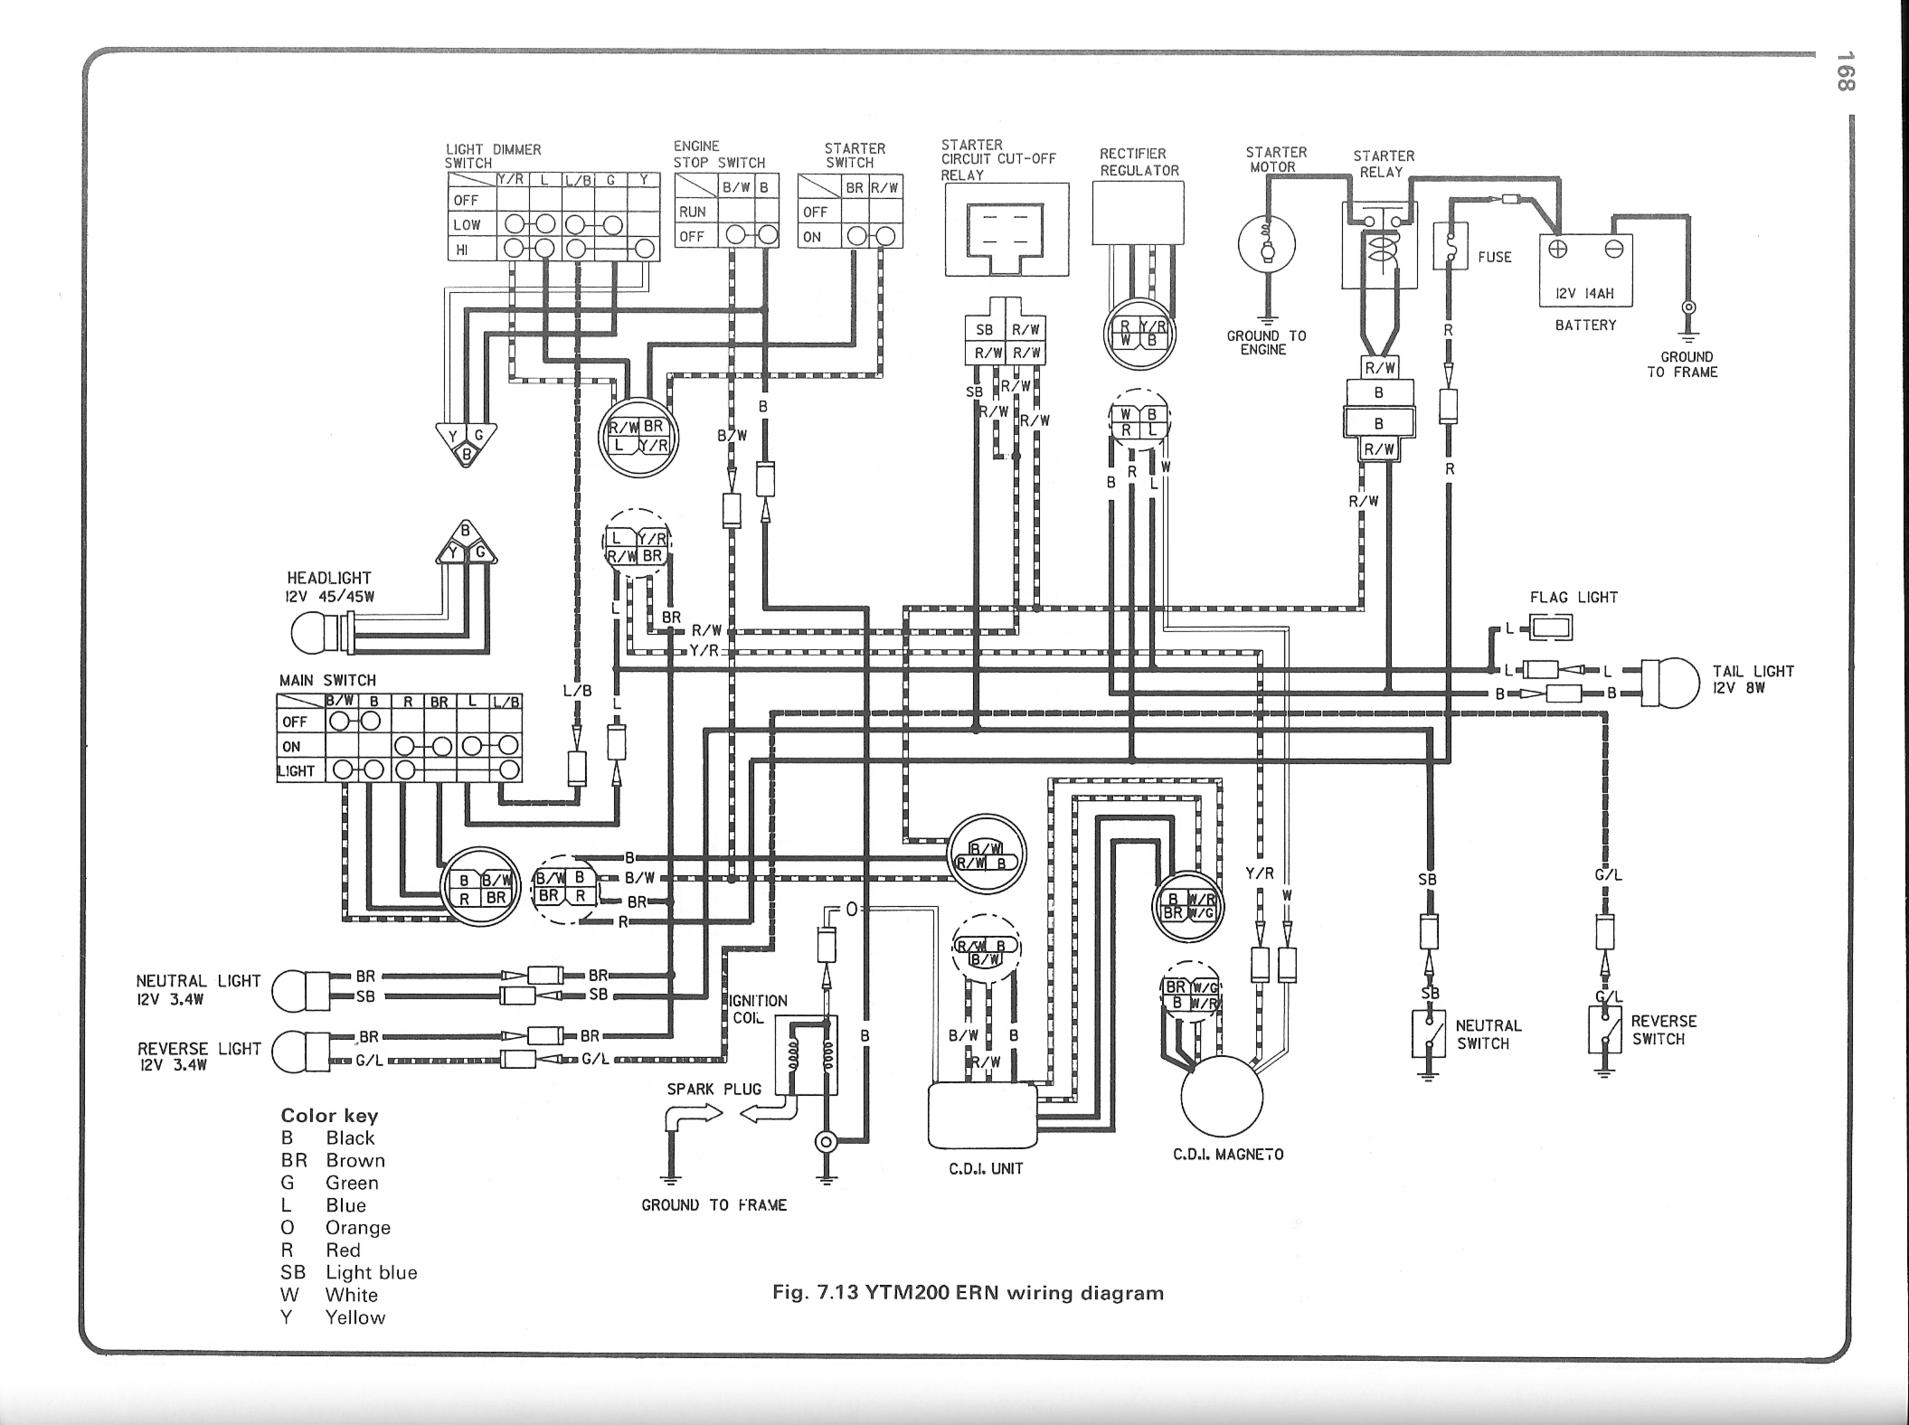 243 YTM200ERN Yamahauler Wiring Diagram on chinese atv wiring schematic